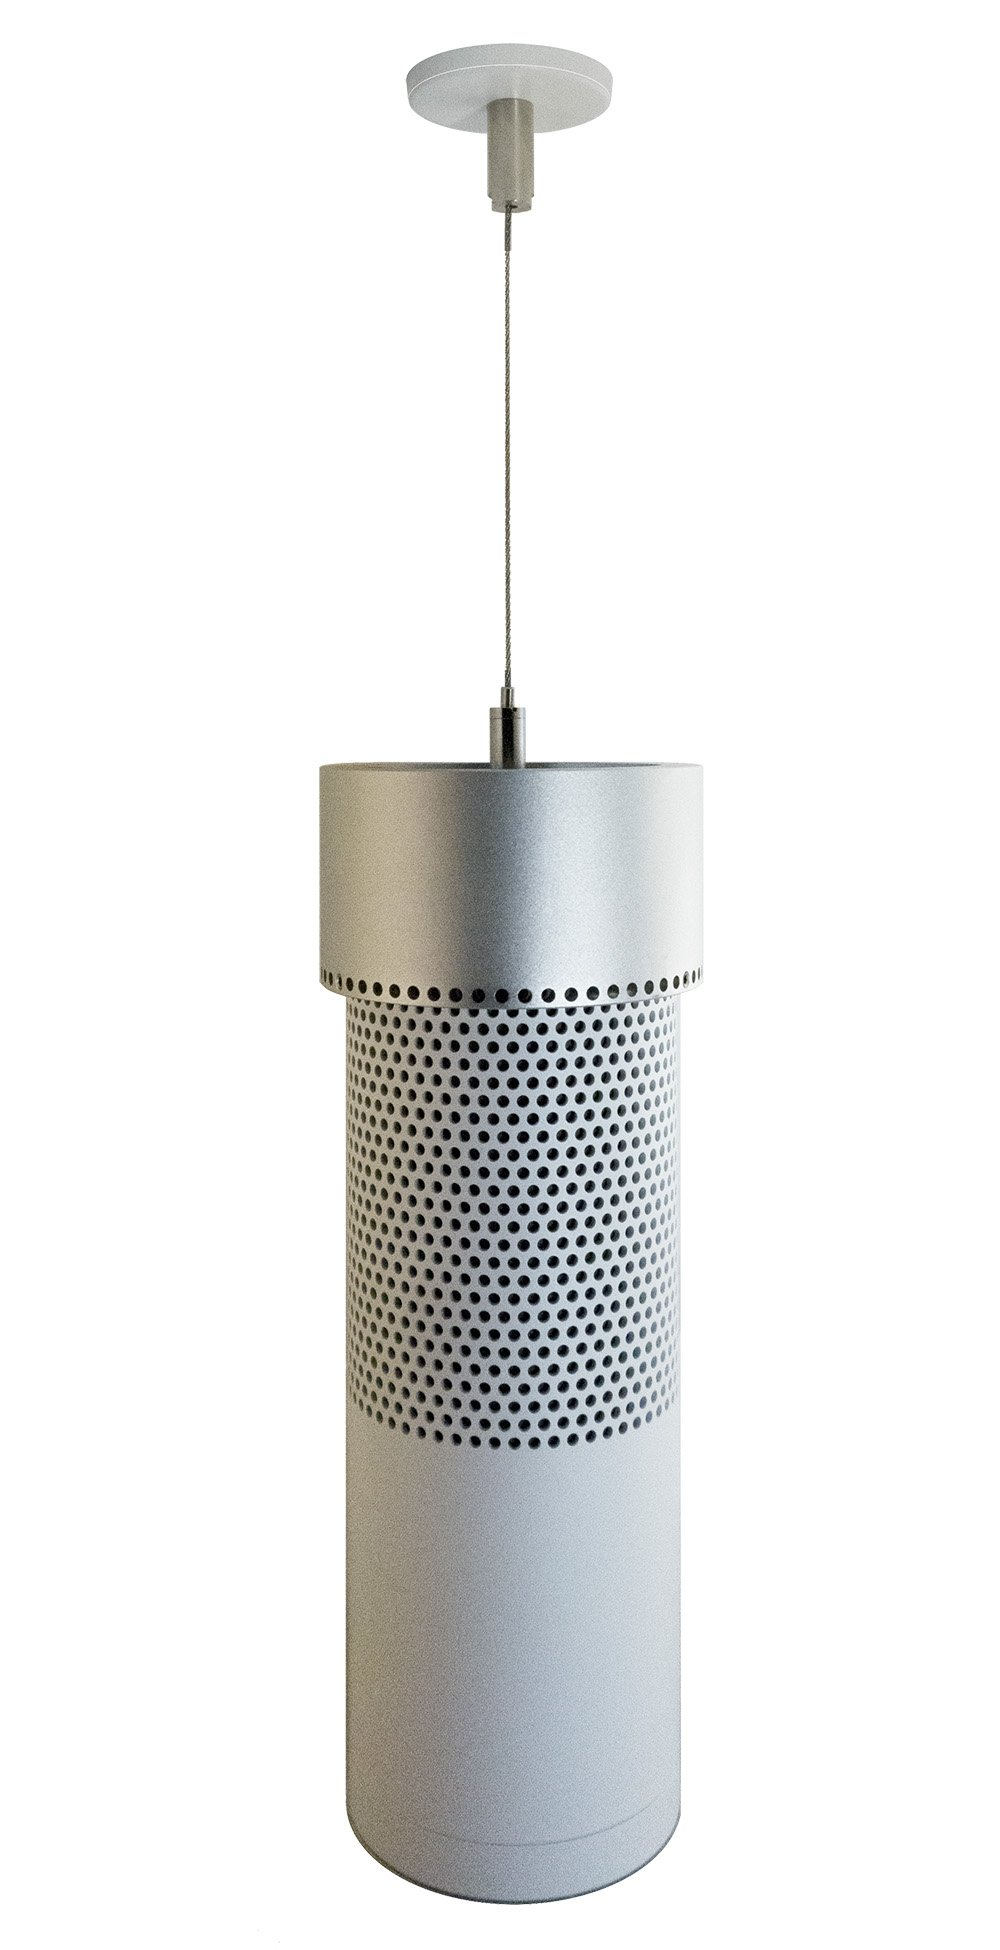 Skymount Pendant Ceiling Mount for the Amazon Echo (1st Generation) (Silver)